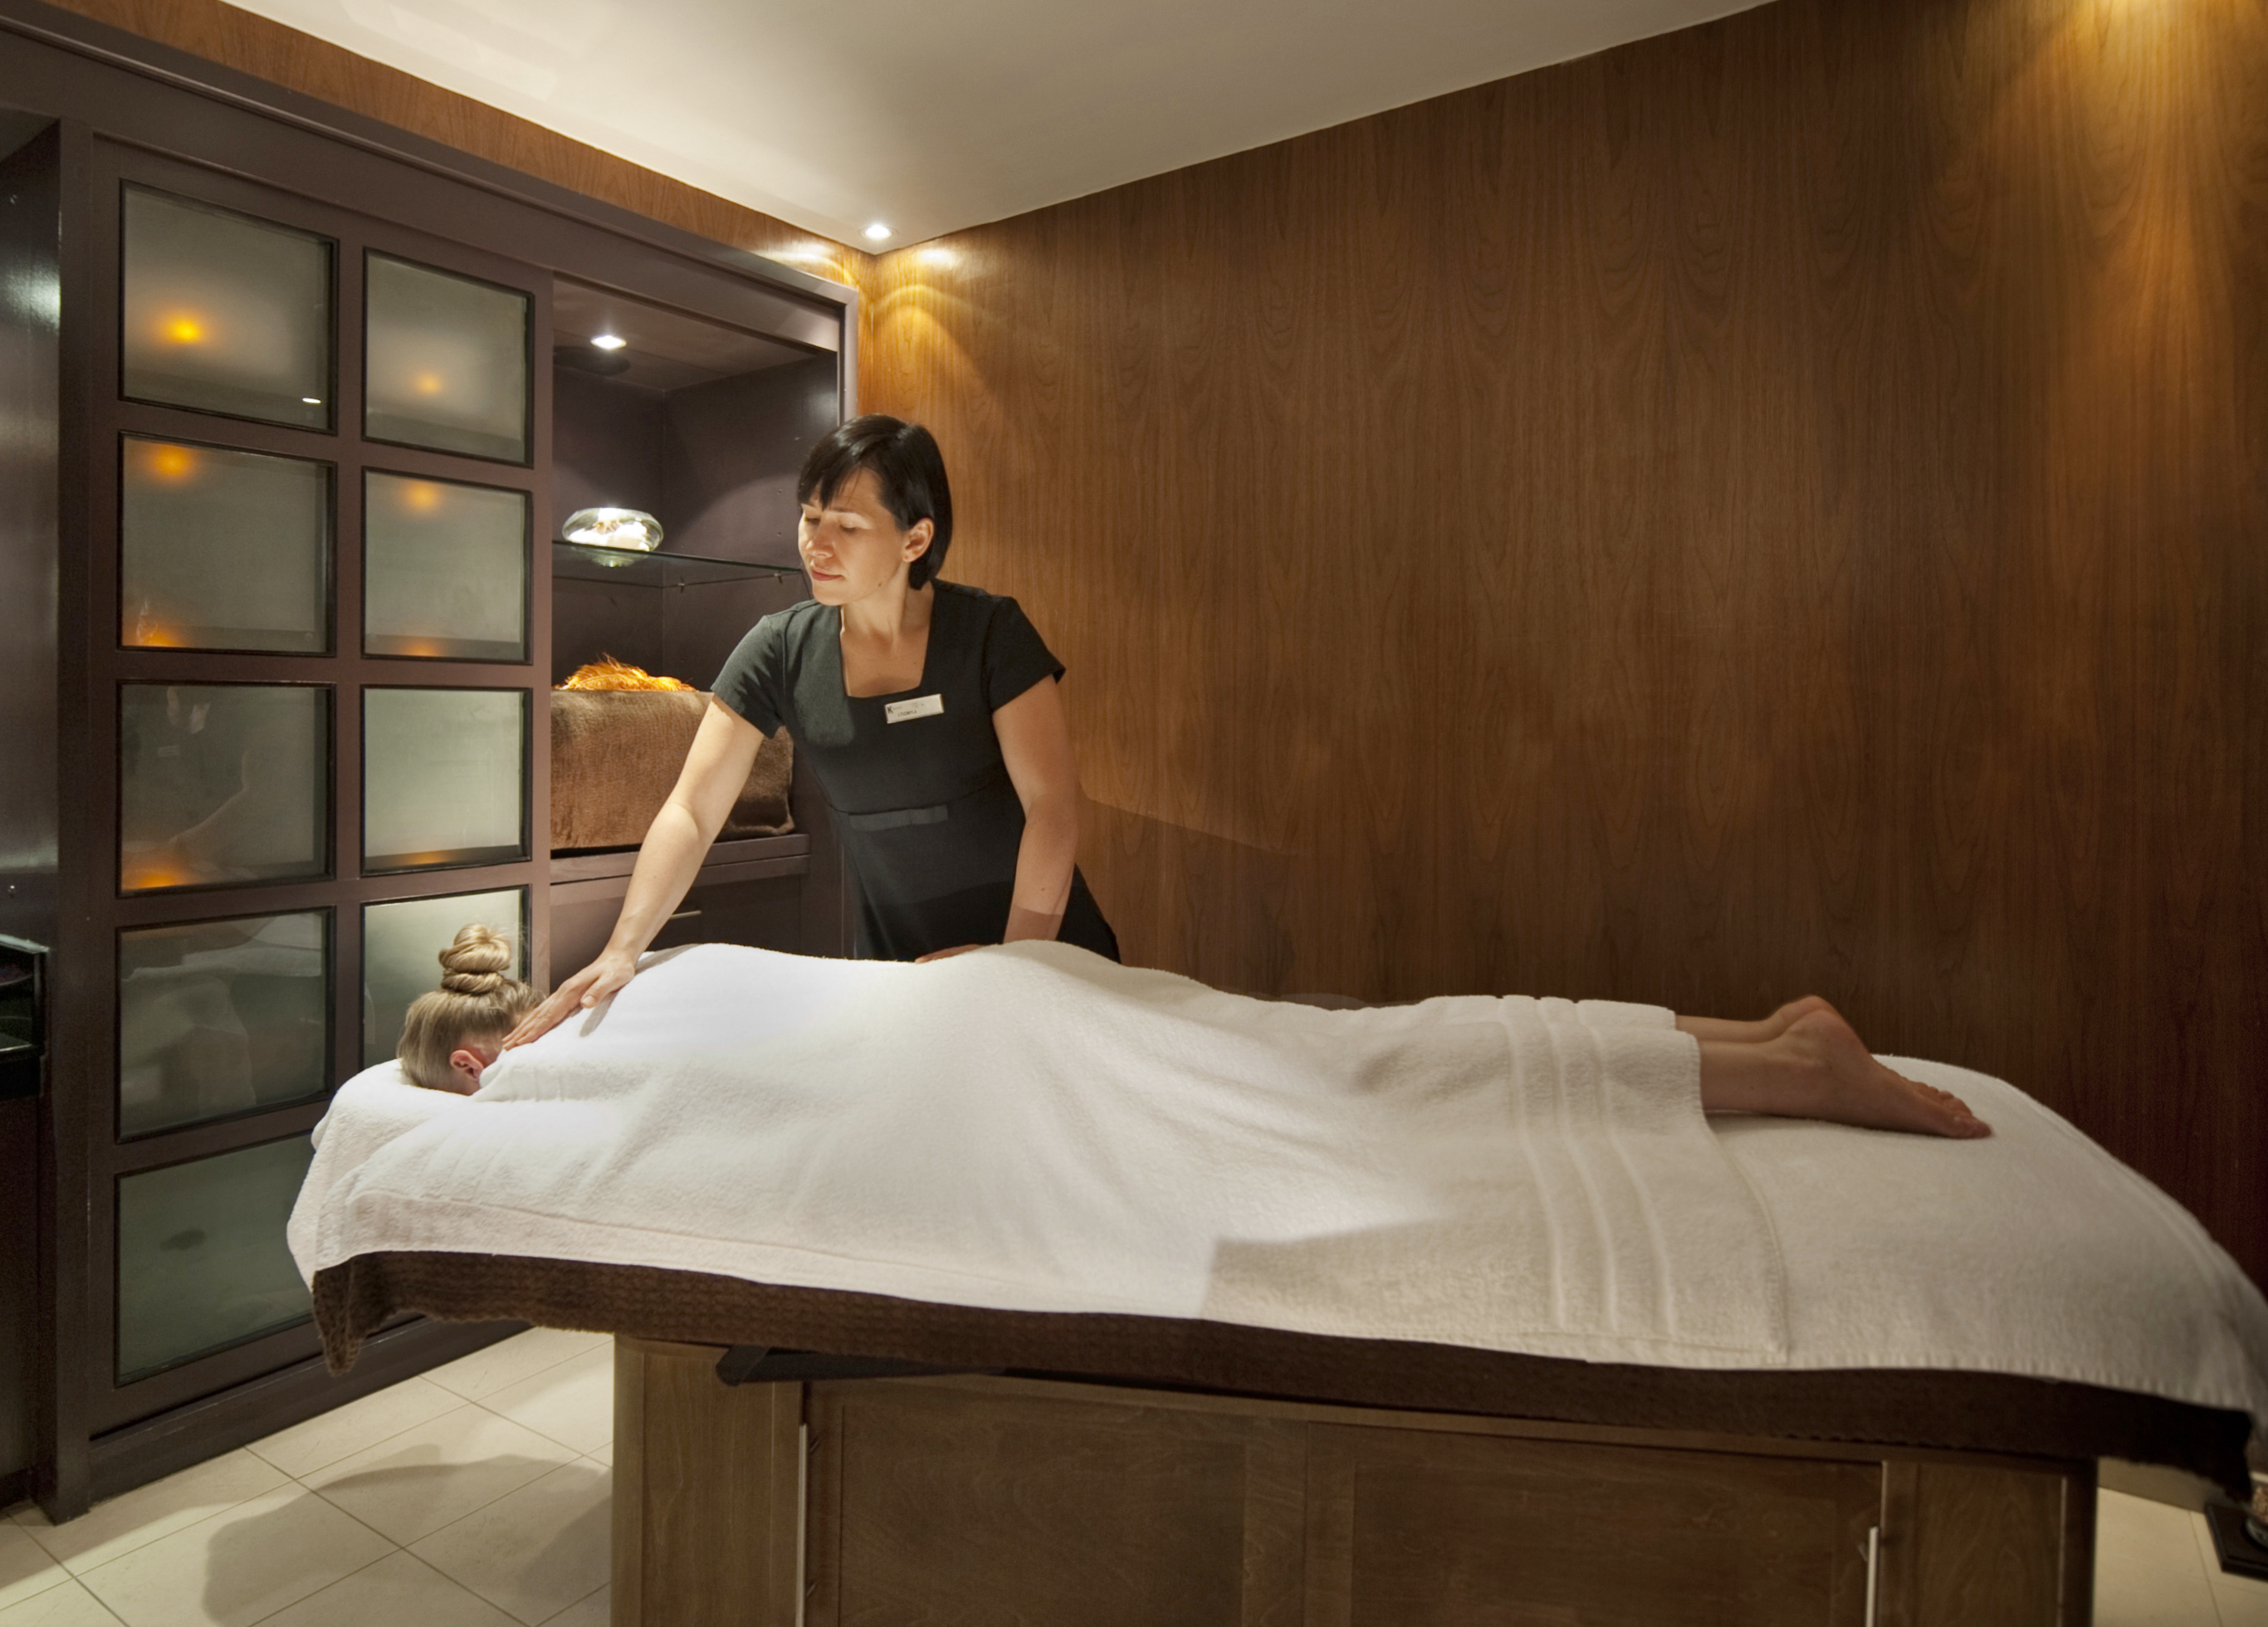 And... Relax... At the K West Hotel & Spa - Spa Treatment Room